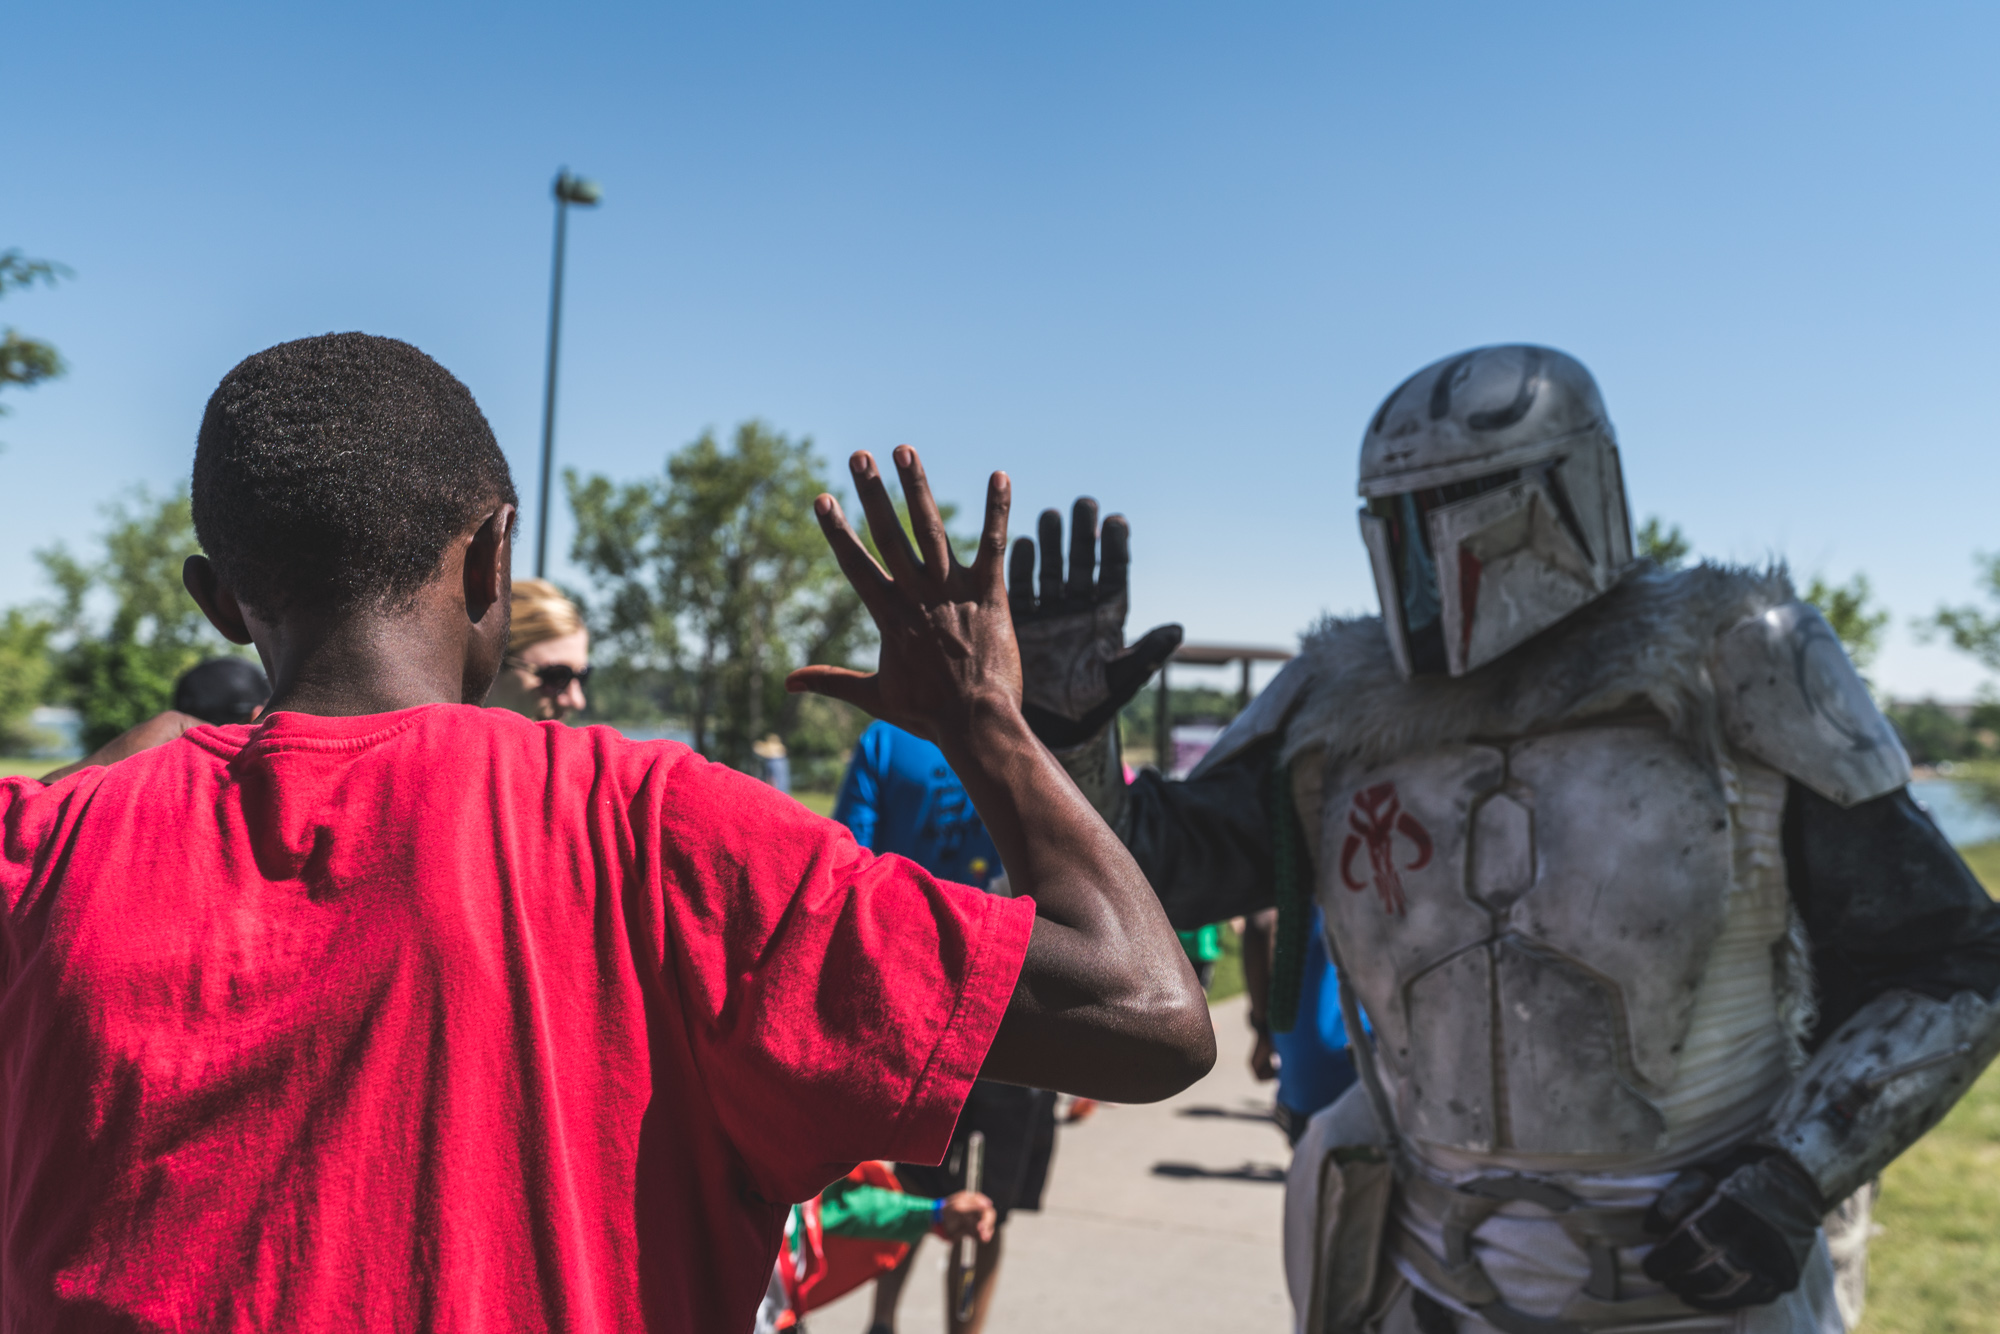 A kid high fives some kind of helmeted character at the ASC Walk With Autism event in Denver, CO.